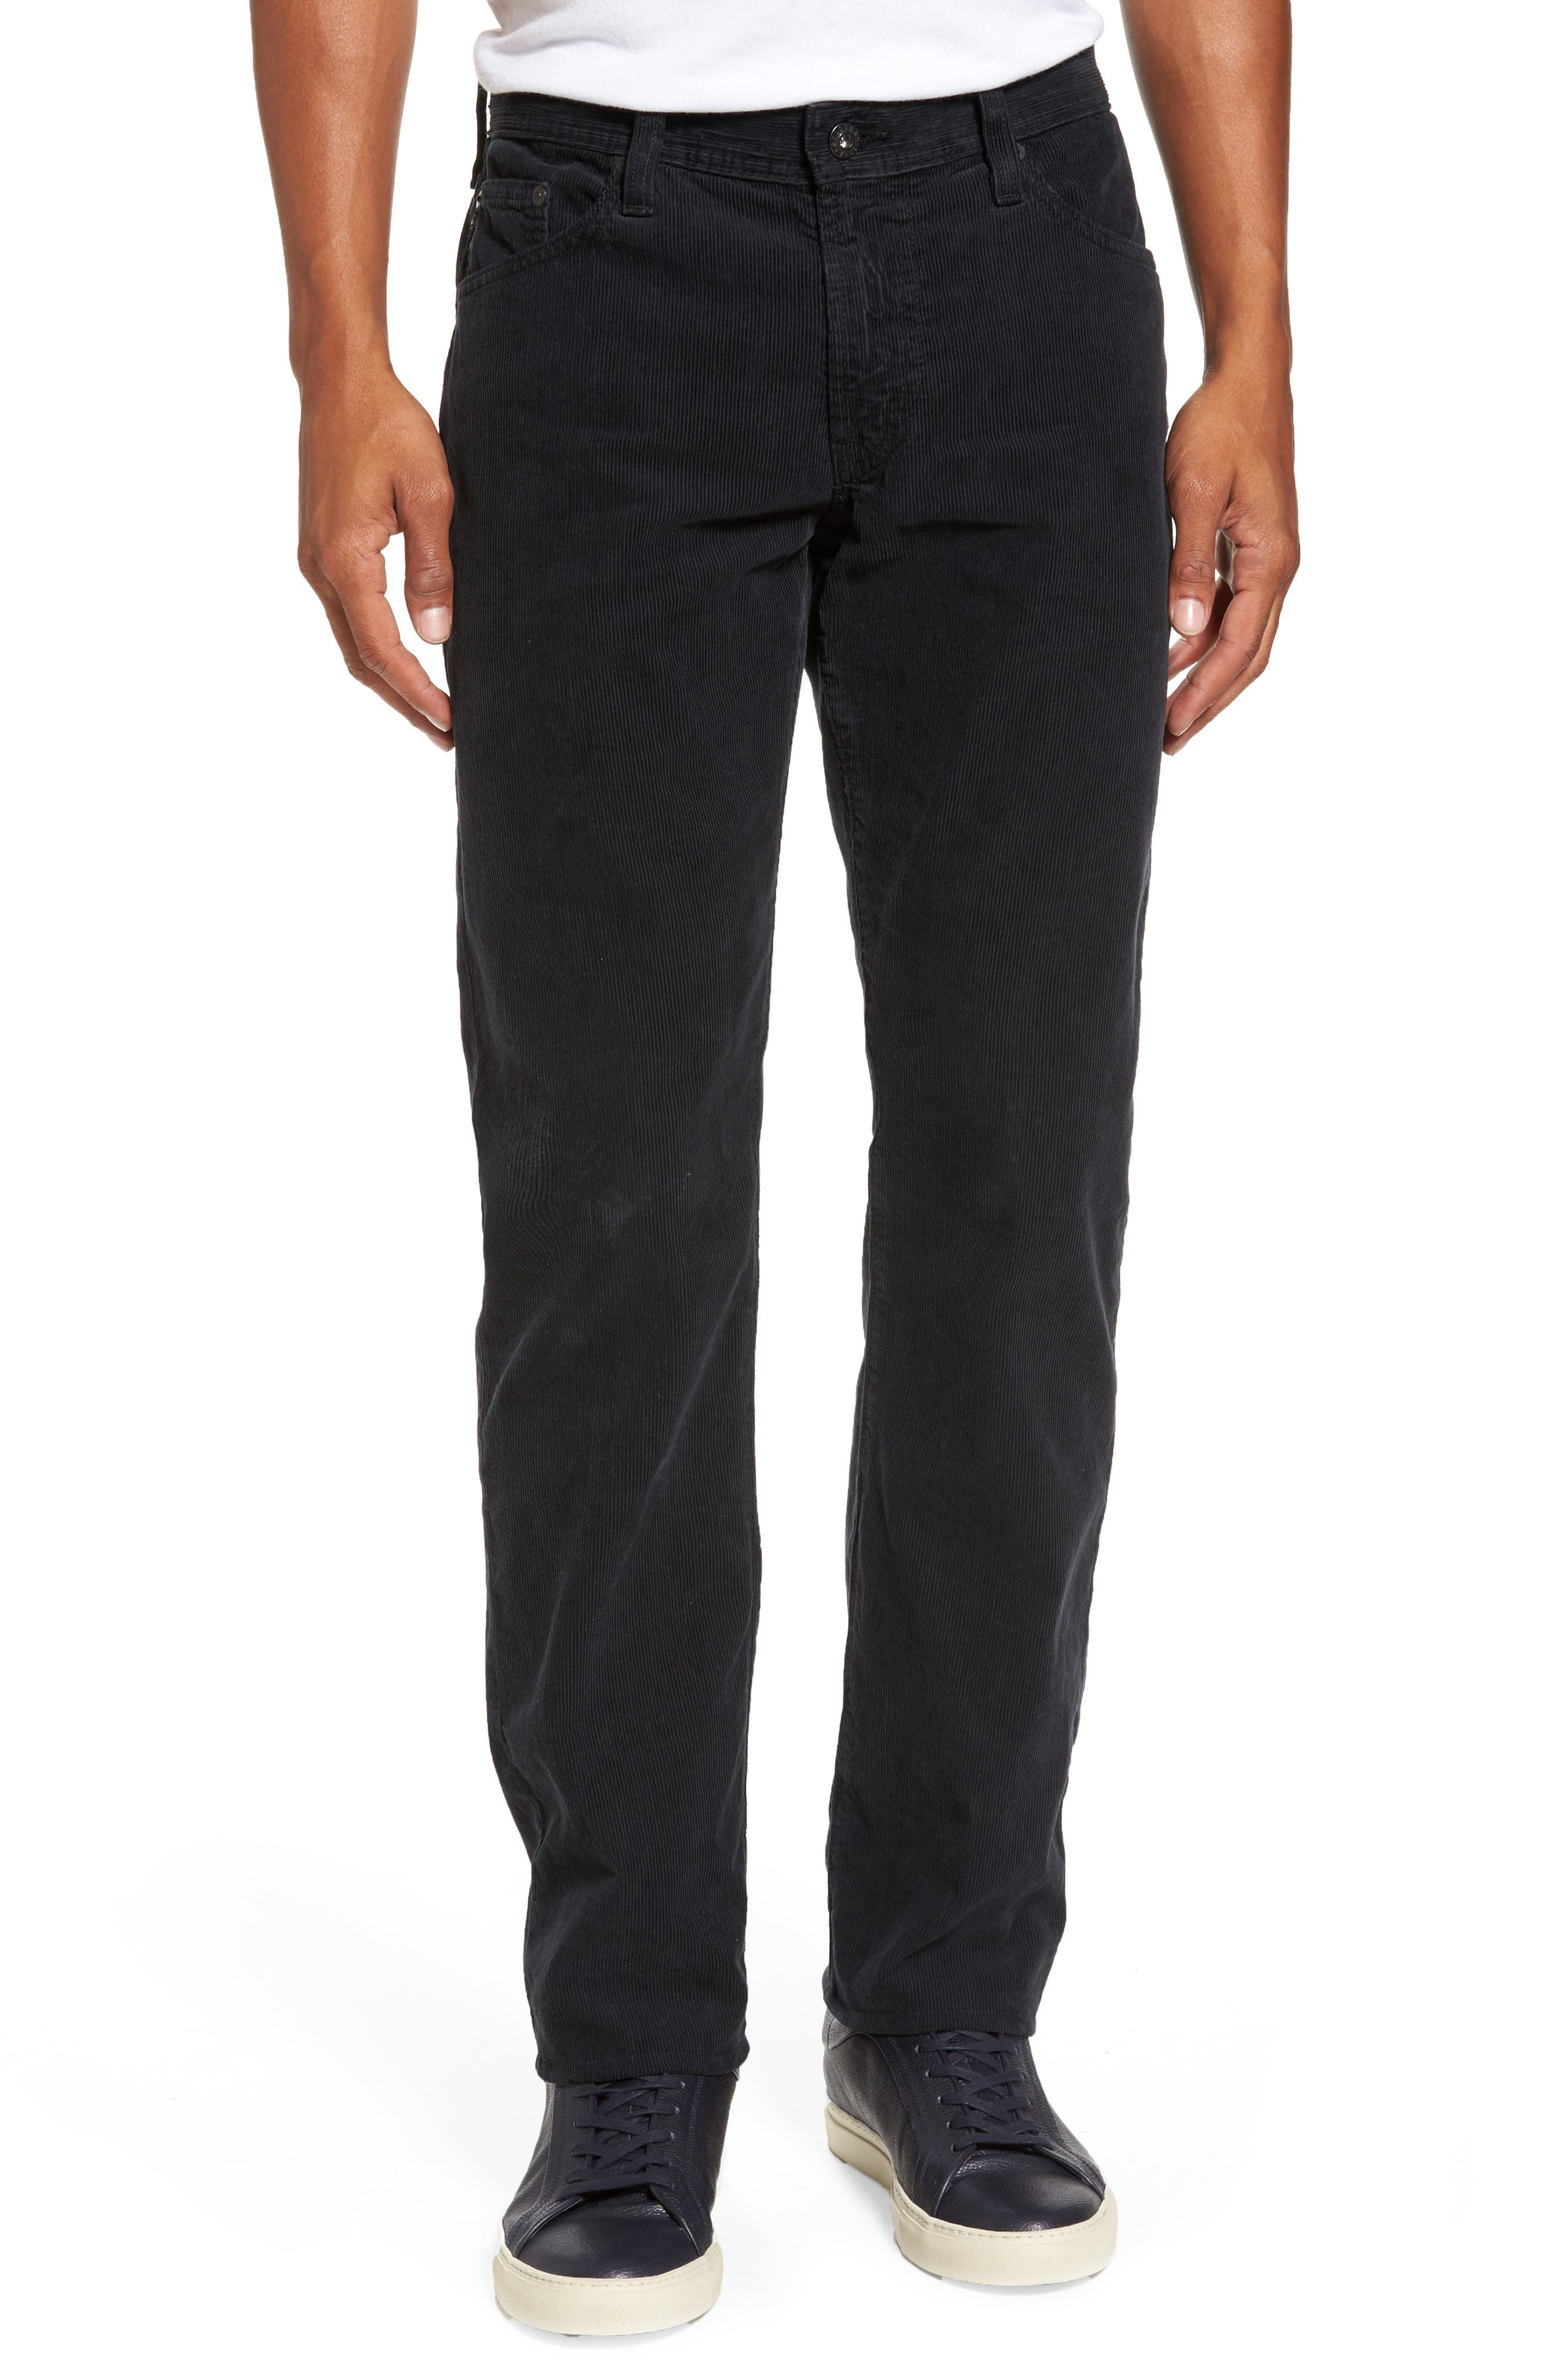 'Graduate' Tailored Straight Leg Corduroy Pants,                         Main,                         color, 017